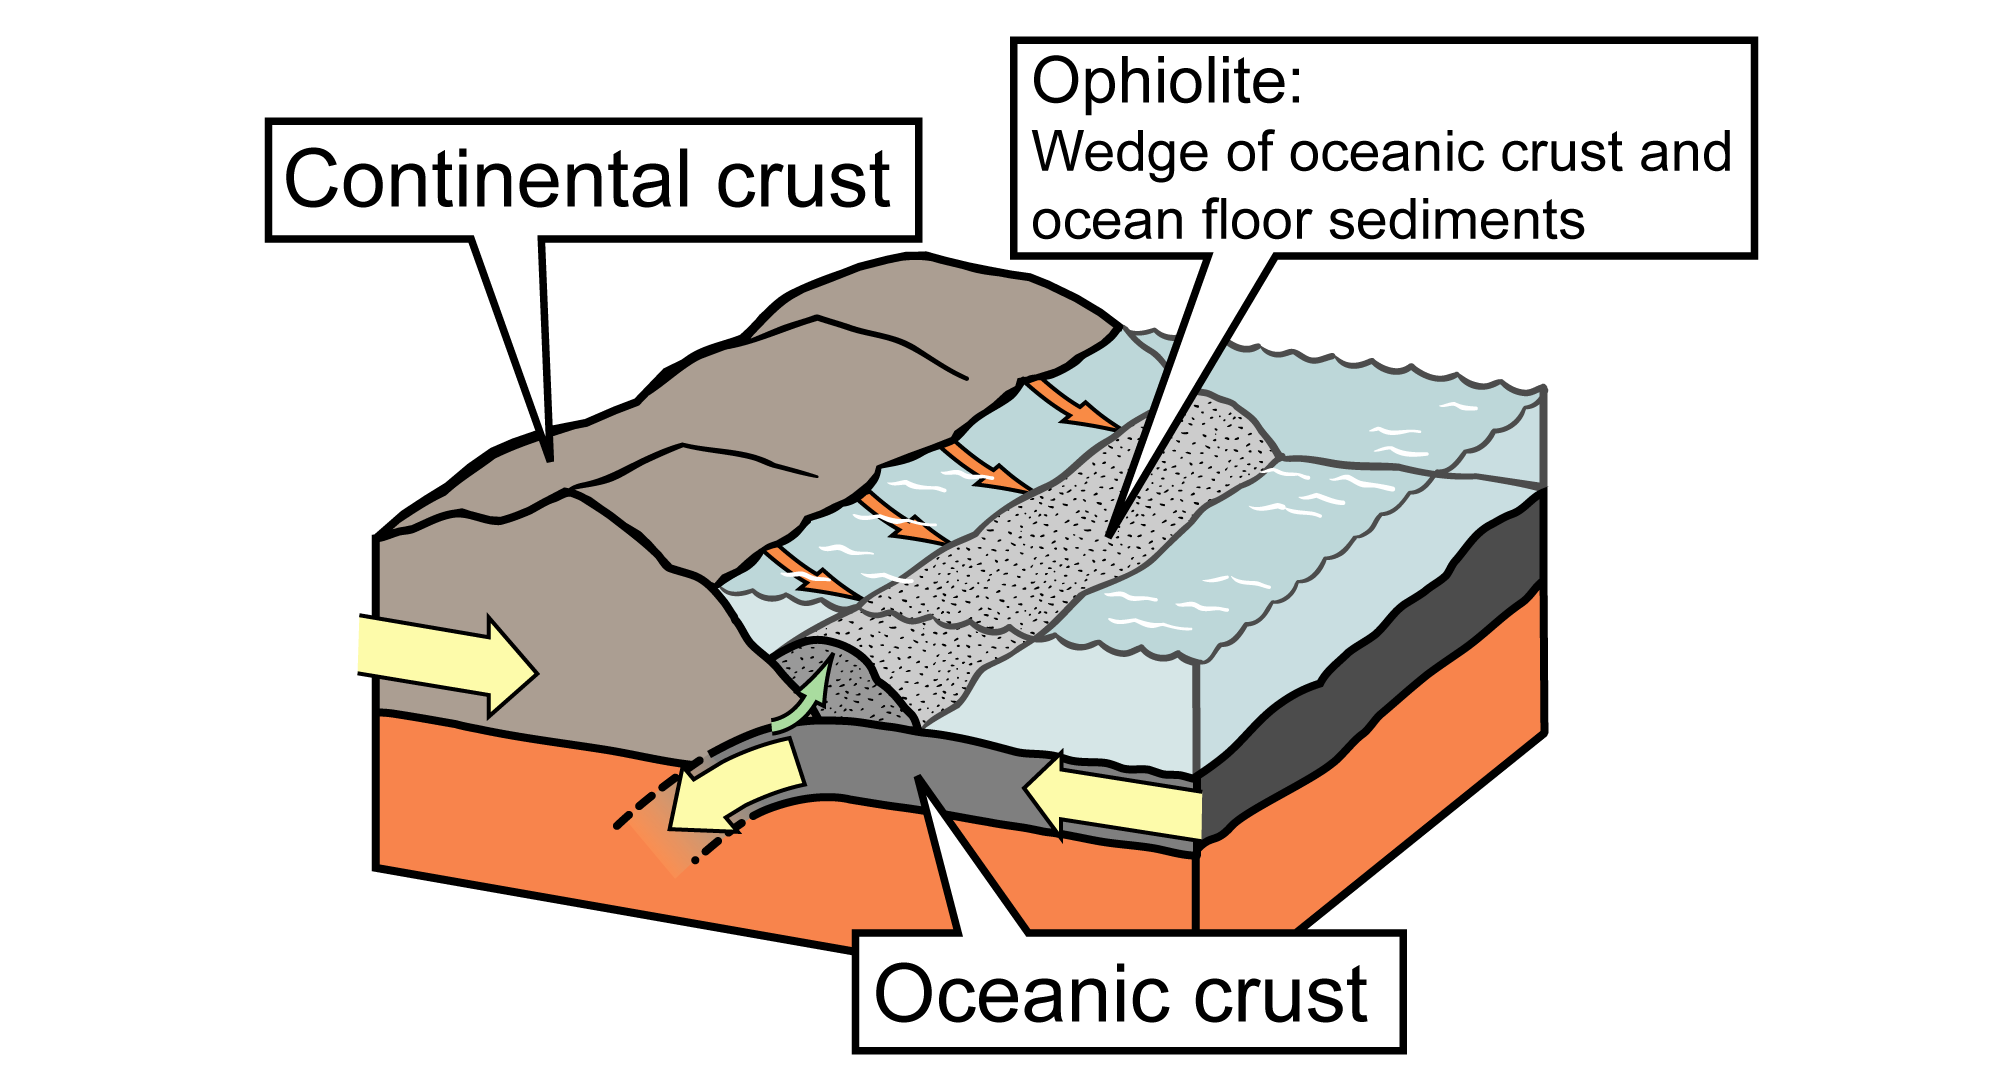 Illustration of how ophiolites form at subduction zones.